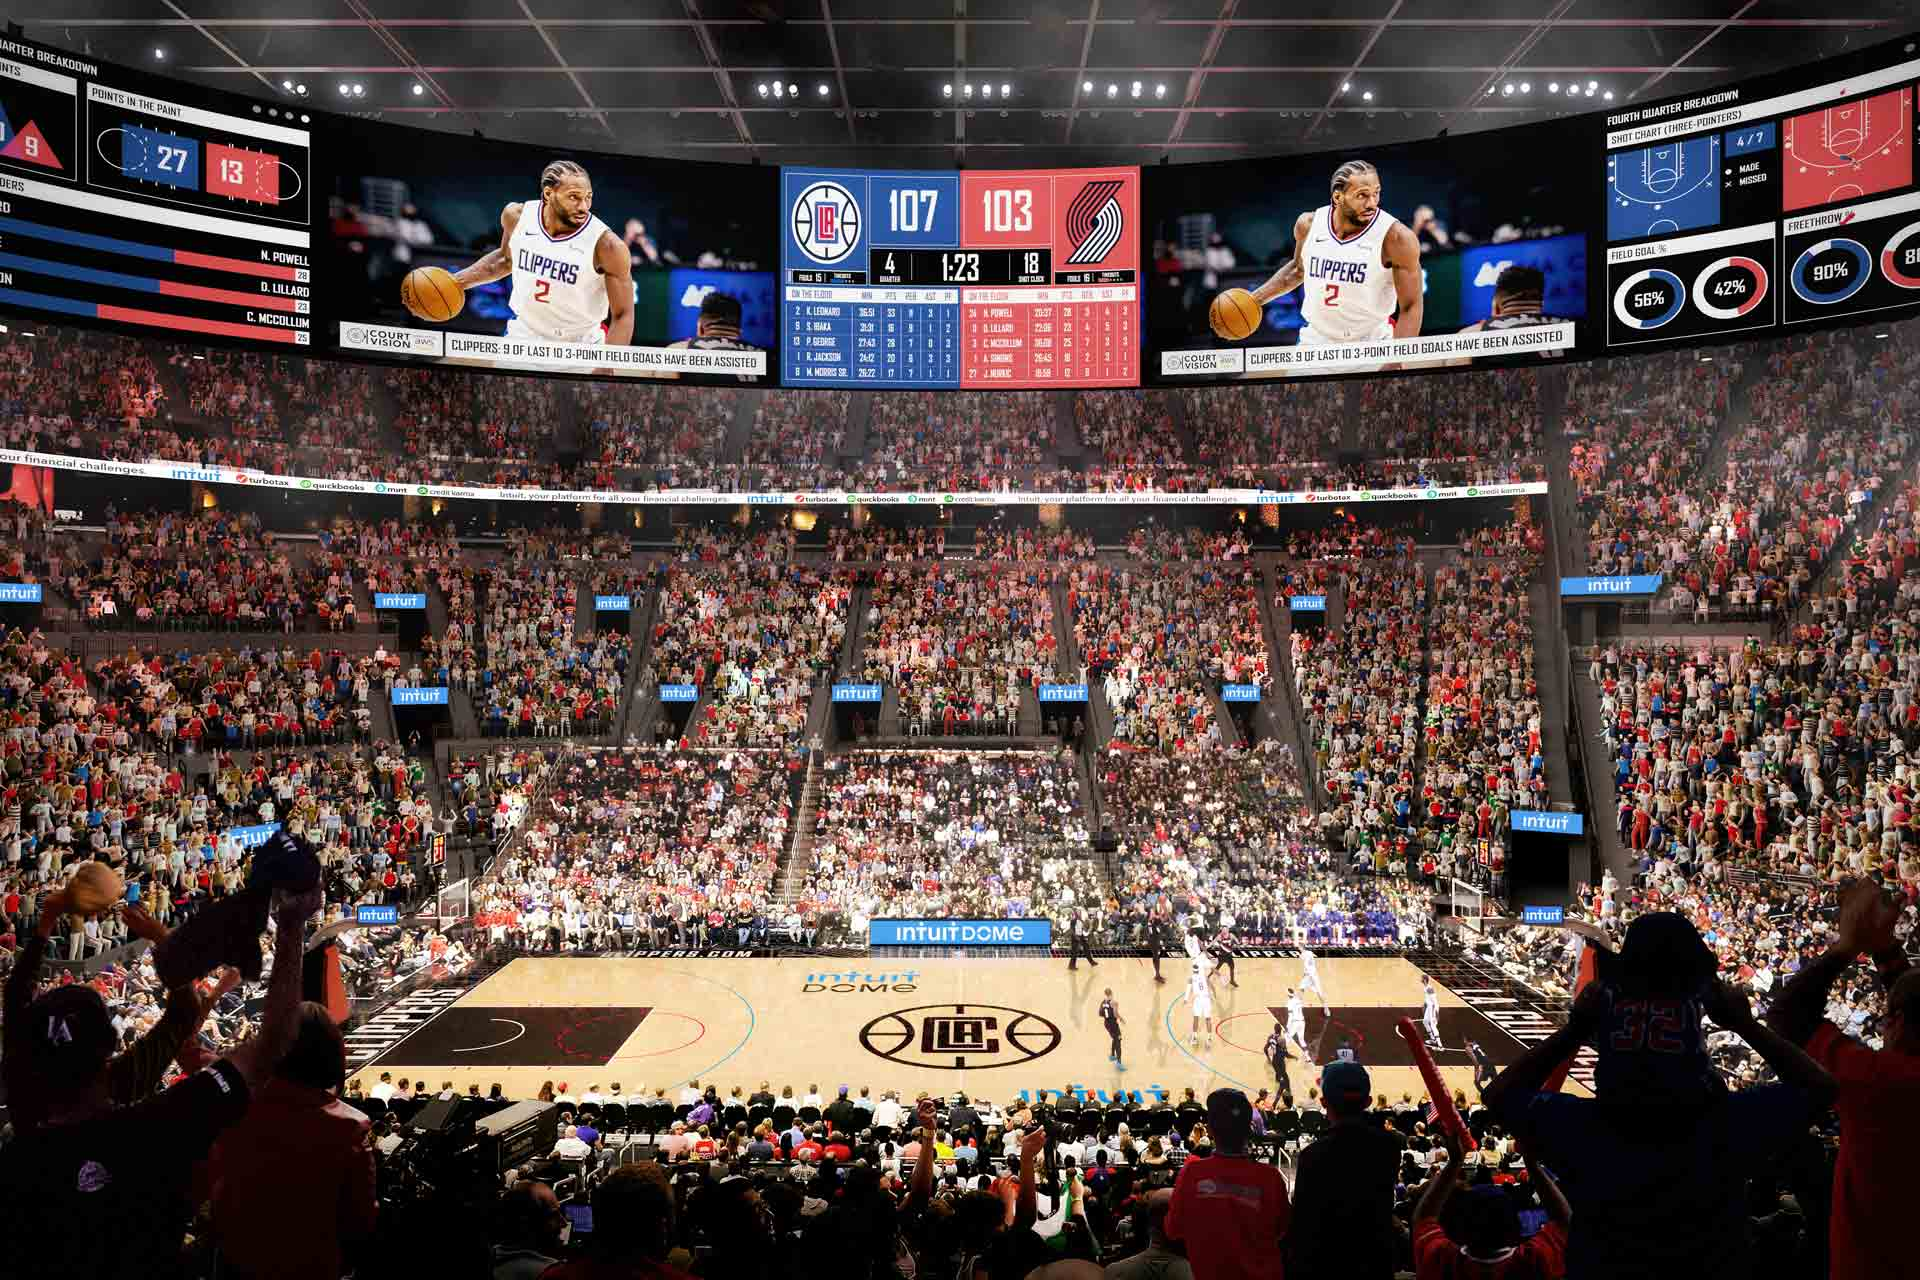 LA Clippers Introduce Intuit Dome